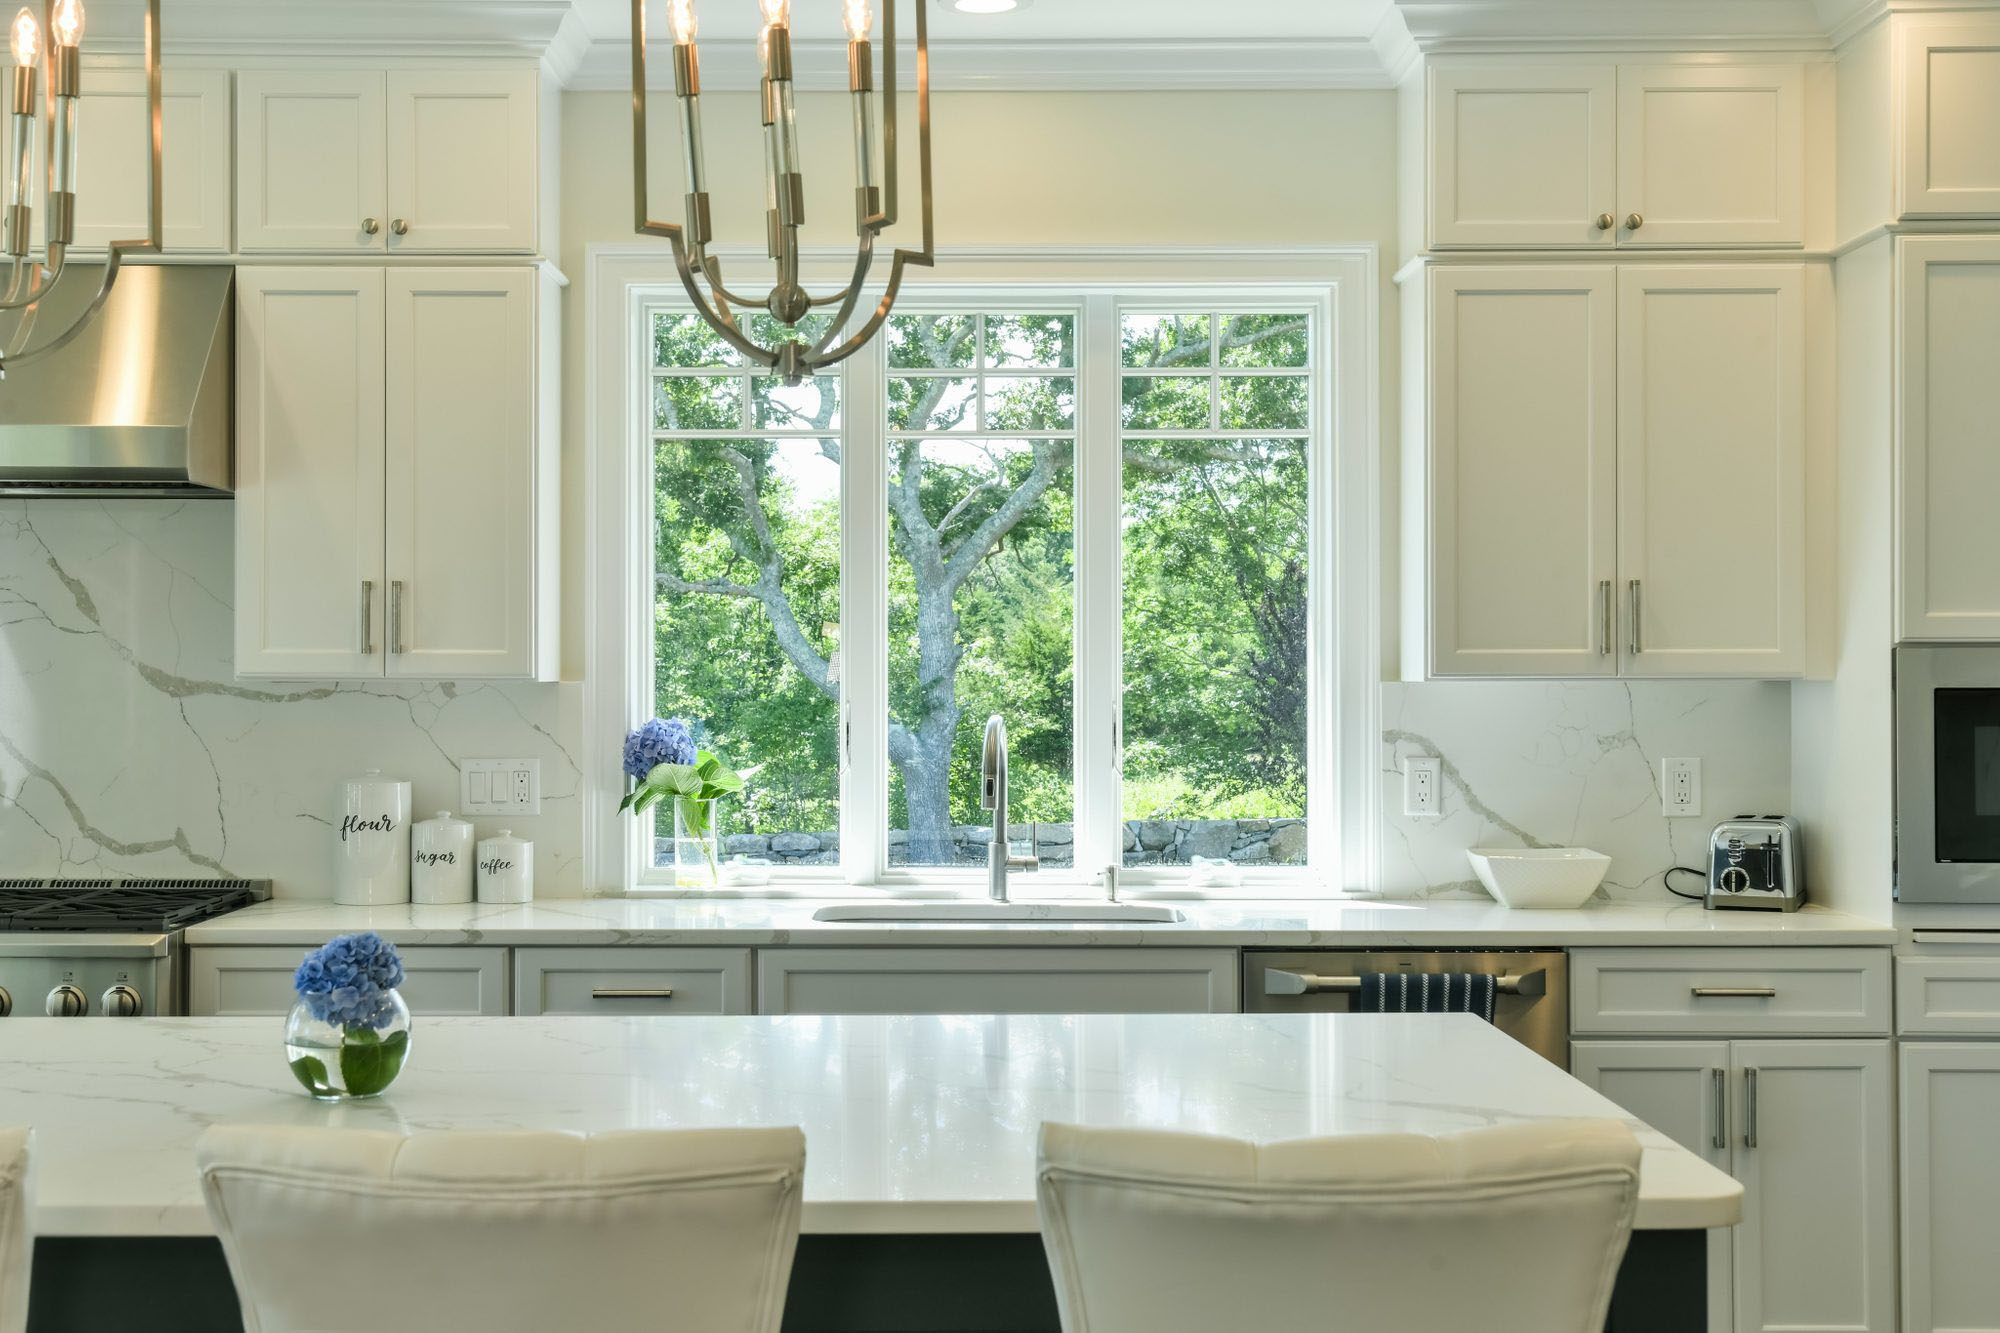 Traditional white kitchen using warm cream and marble with stainless steel appliances.